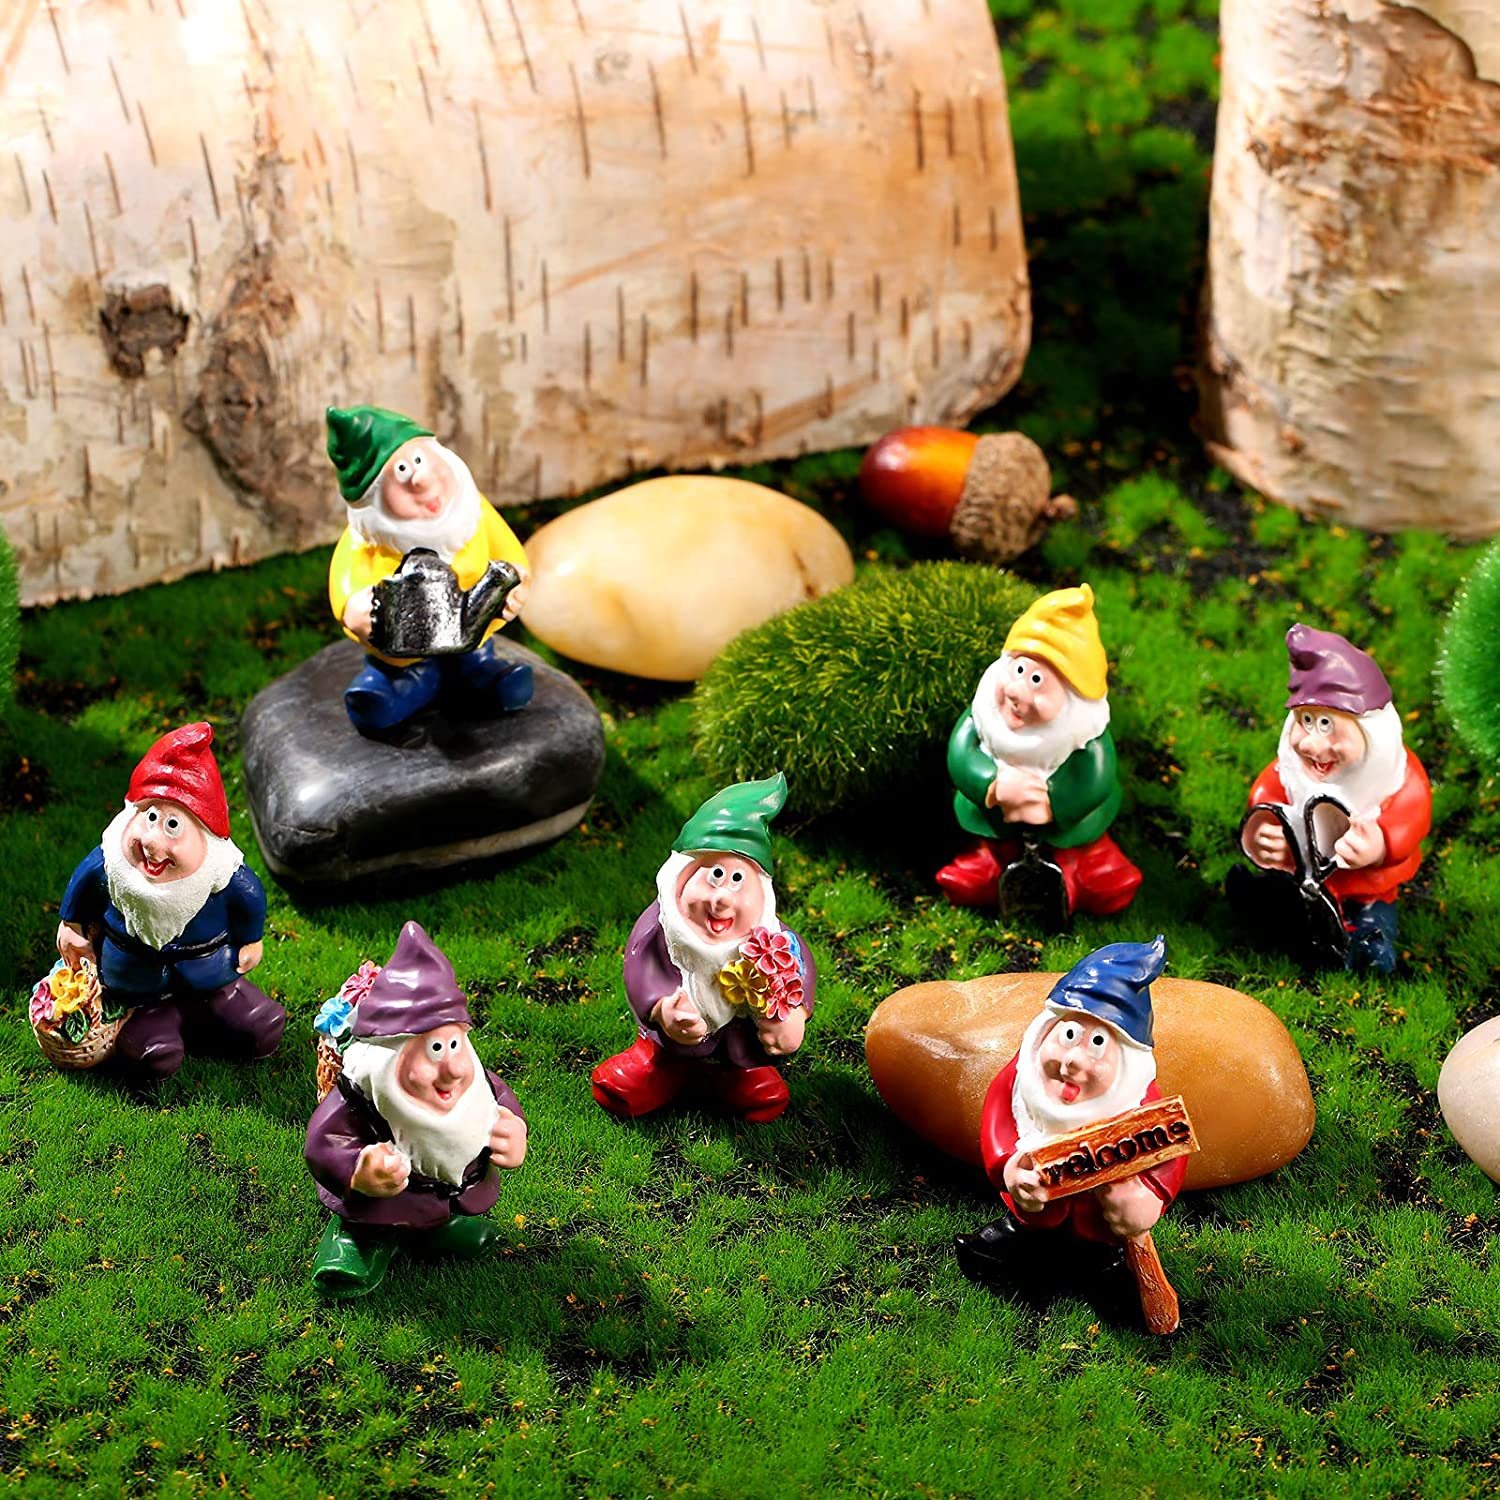 7 Pieces Gnomes Fairy Resin Statues Miniature Fairy Garden Mini Gnome Statue for Table and Garden Decoration for Holiday Festival Garden Decoration, Relatives Friends Kids